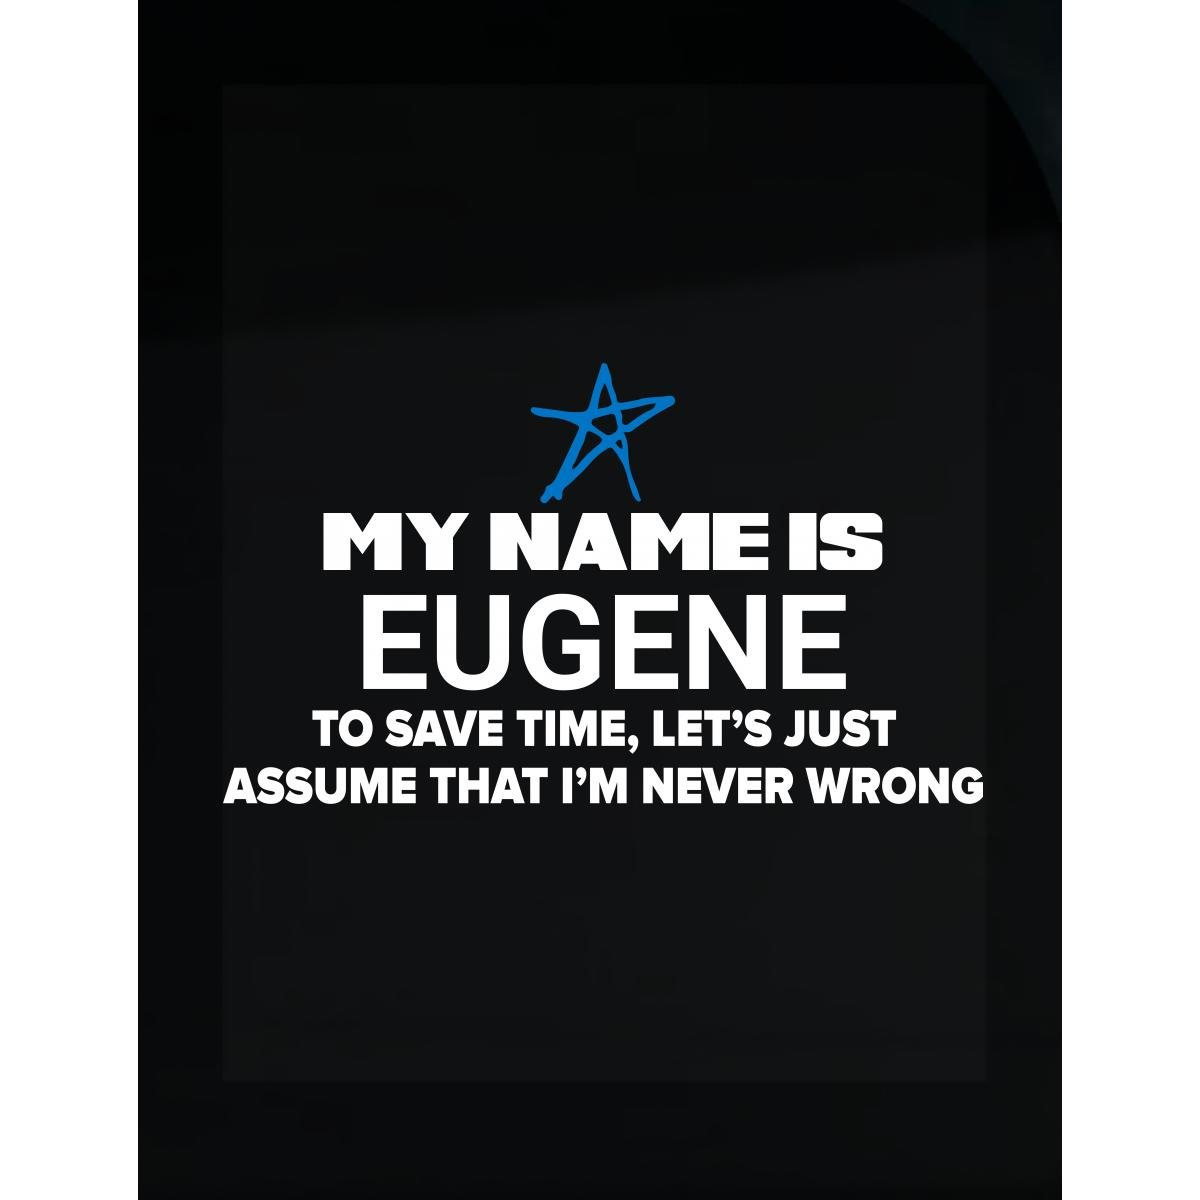 What is the name of Eugene